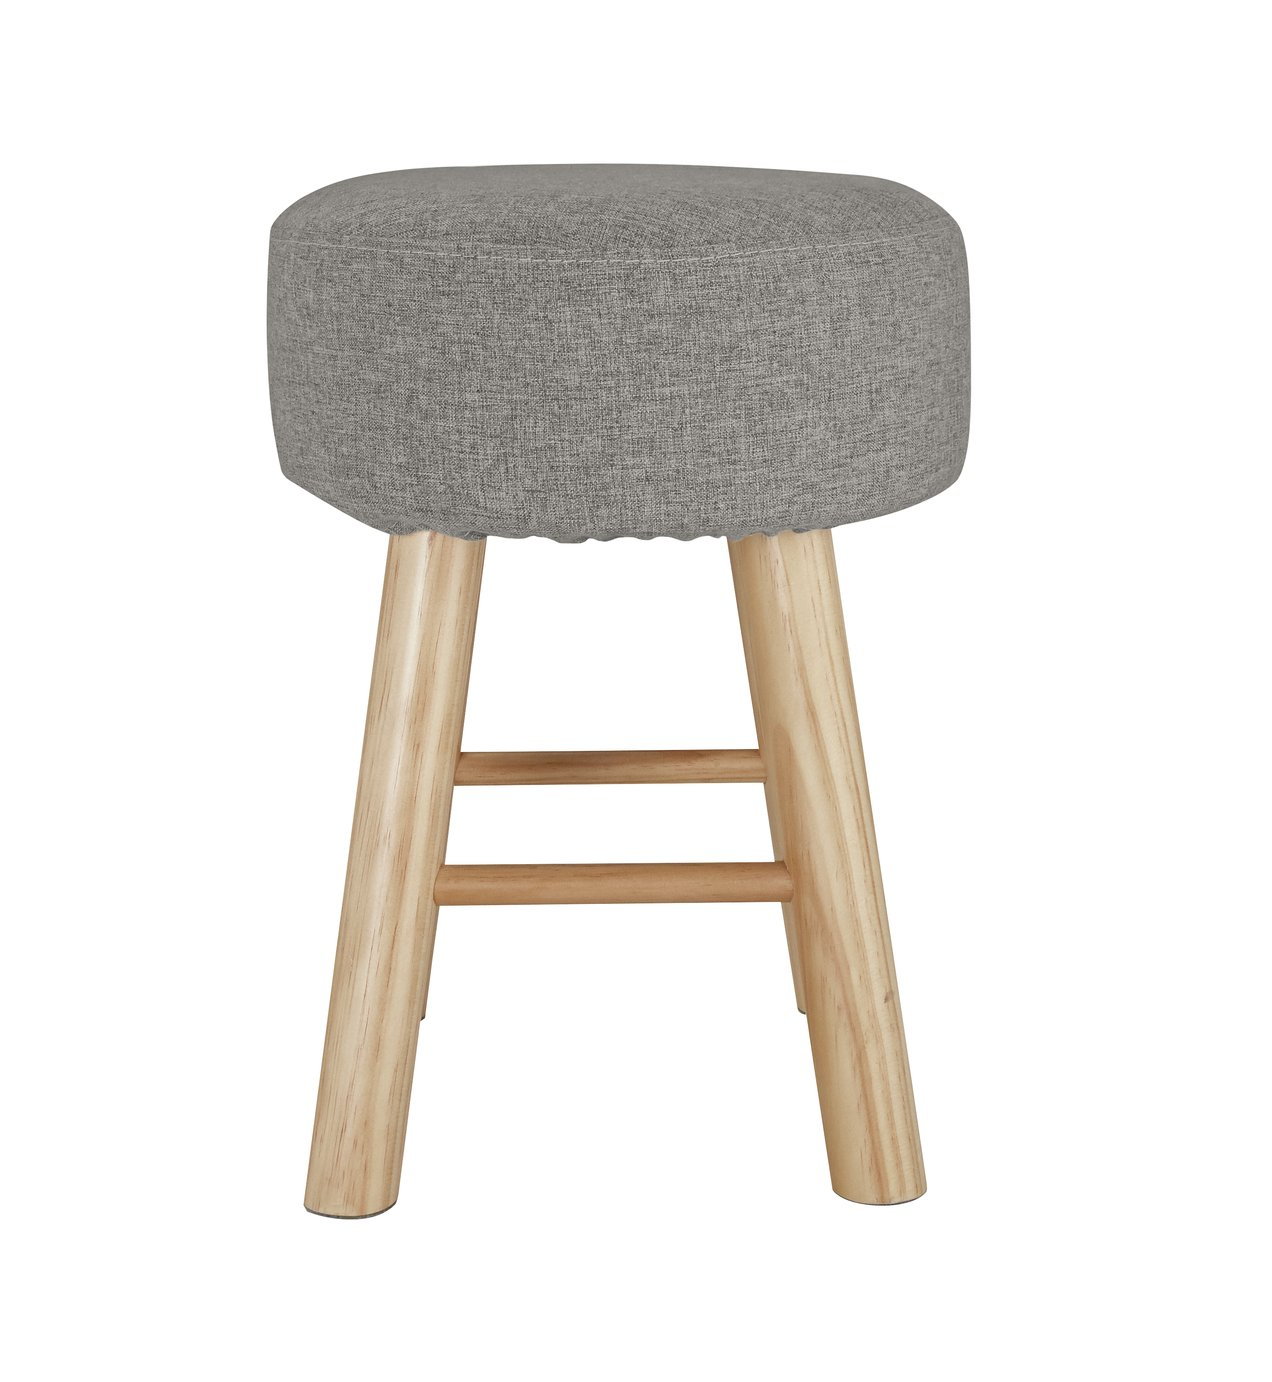 Argos Home Small Fabric Footstool - Light Grey